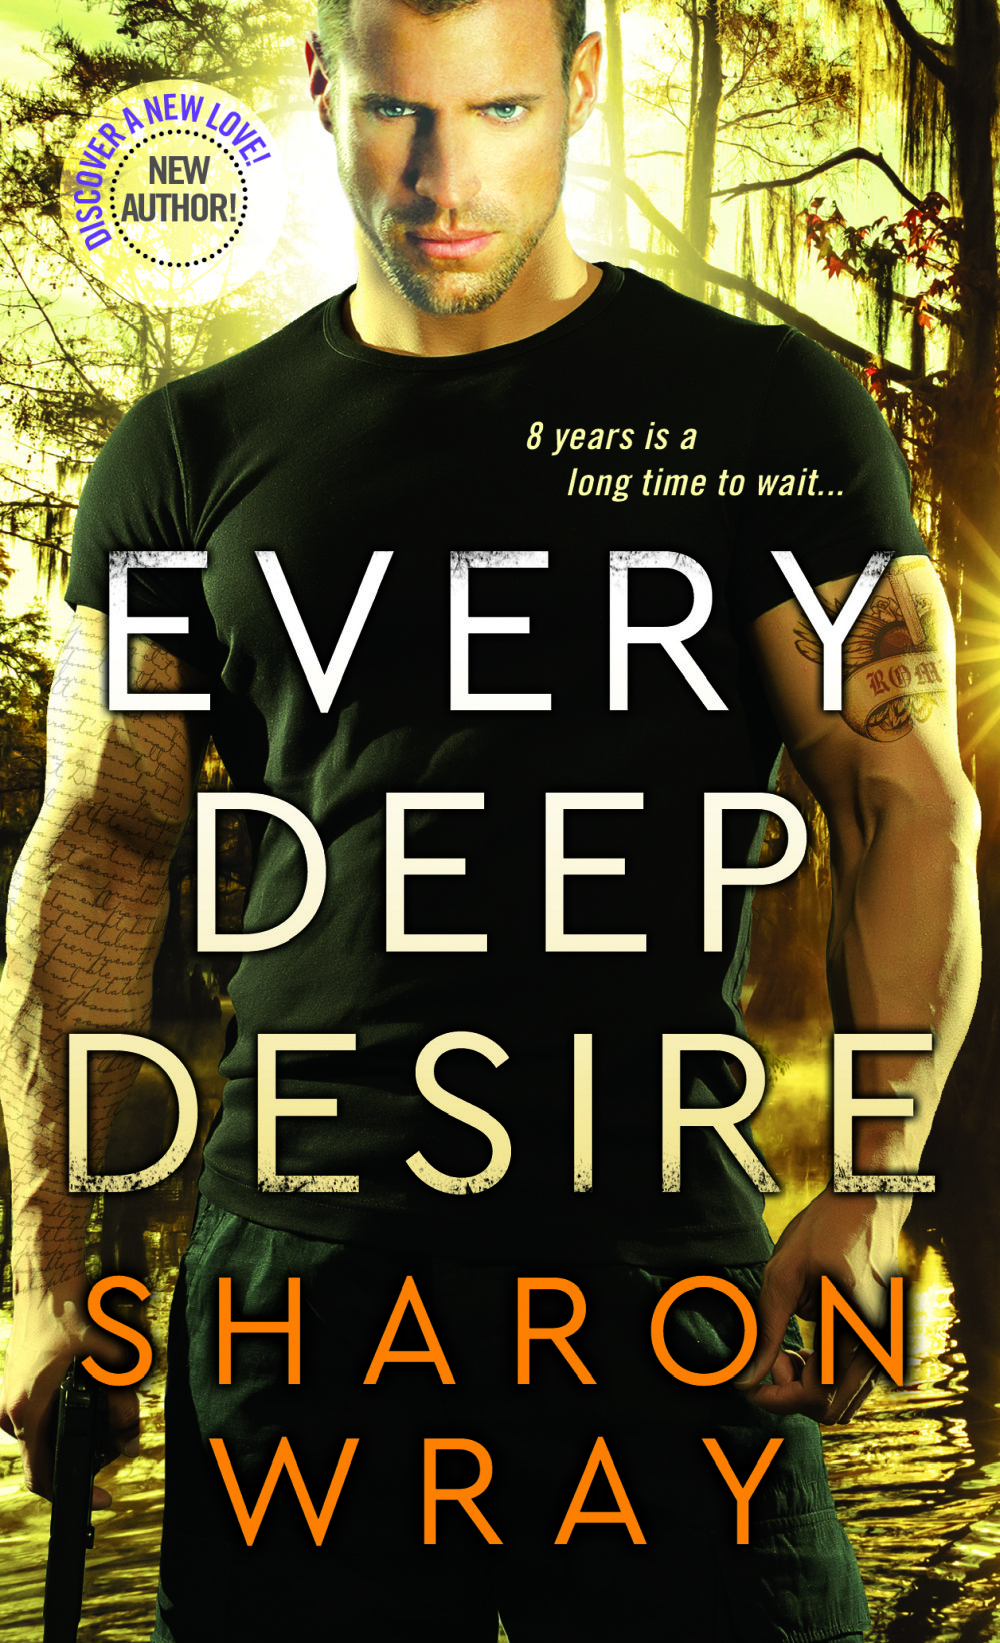 every-deep-desire-sharon-wray cover.jpg